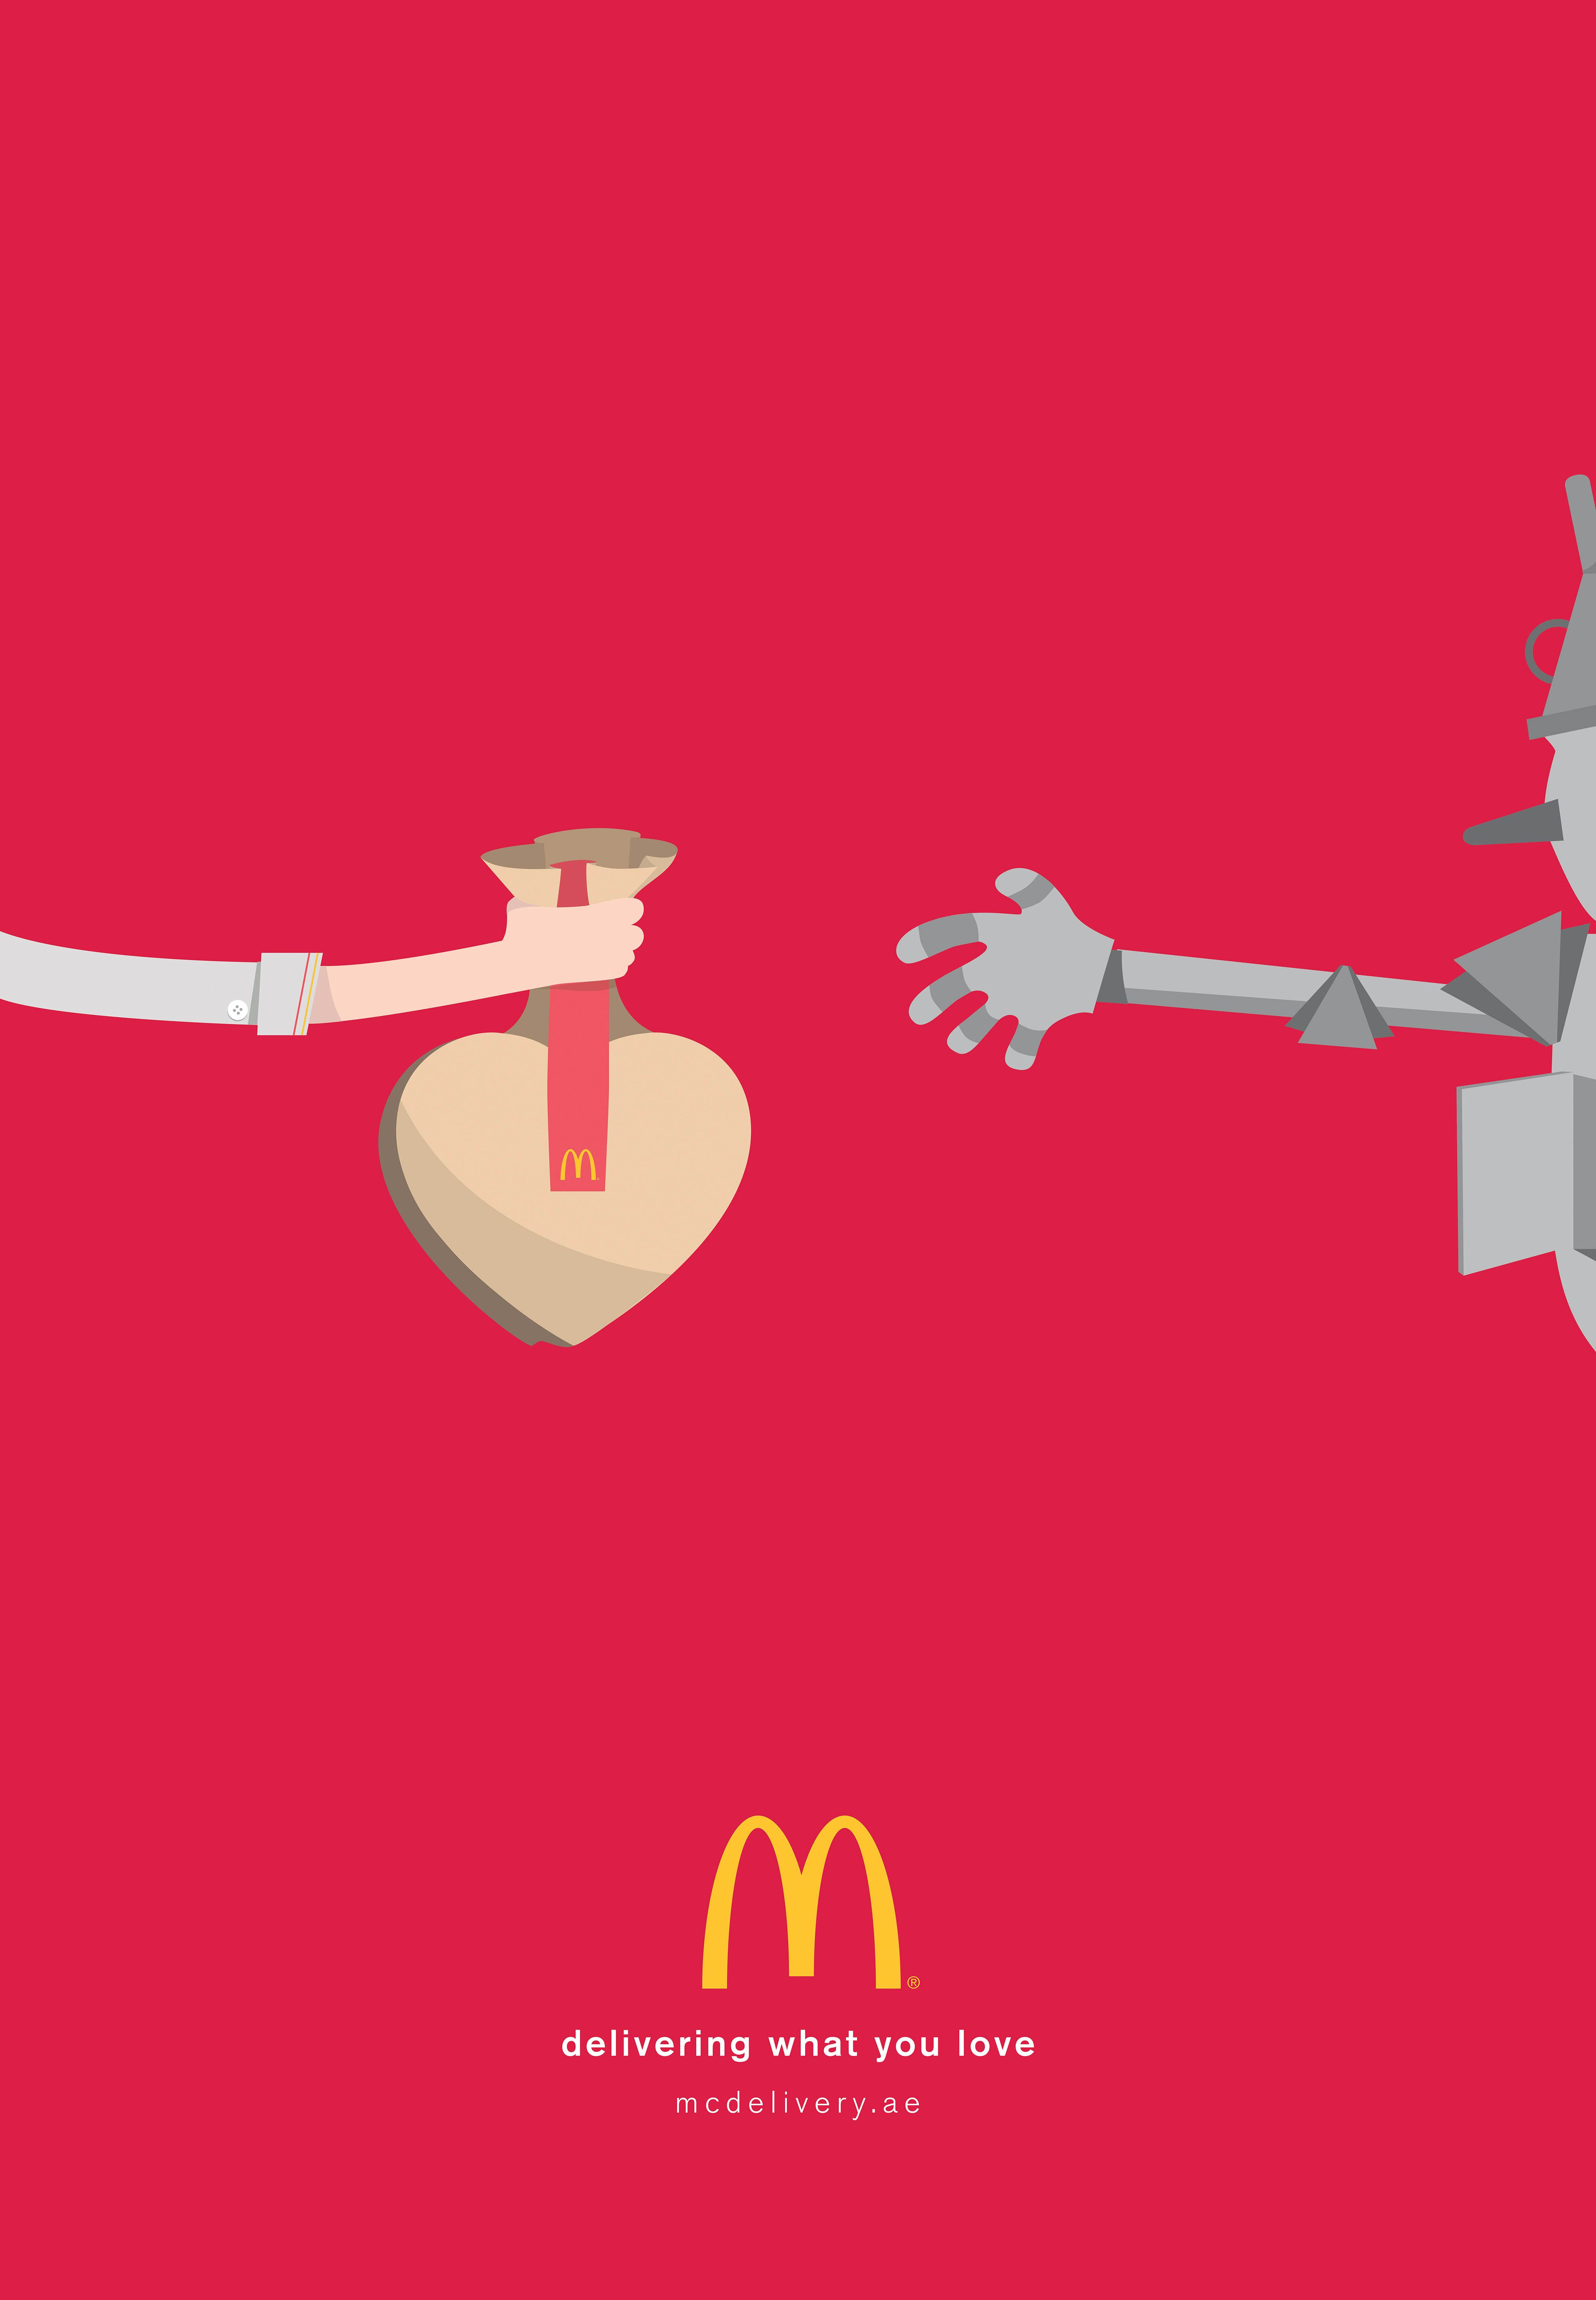 - McDonald's McDelivery: Delivering what you love